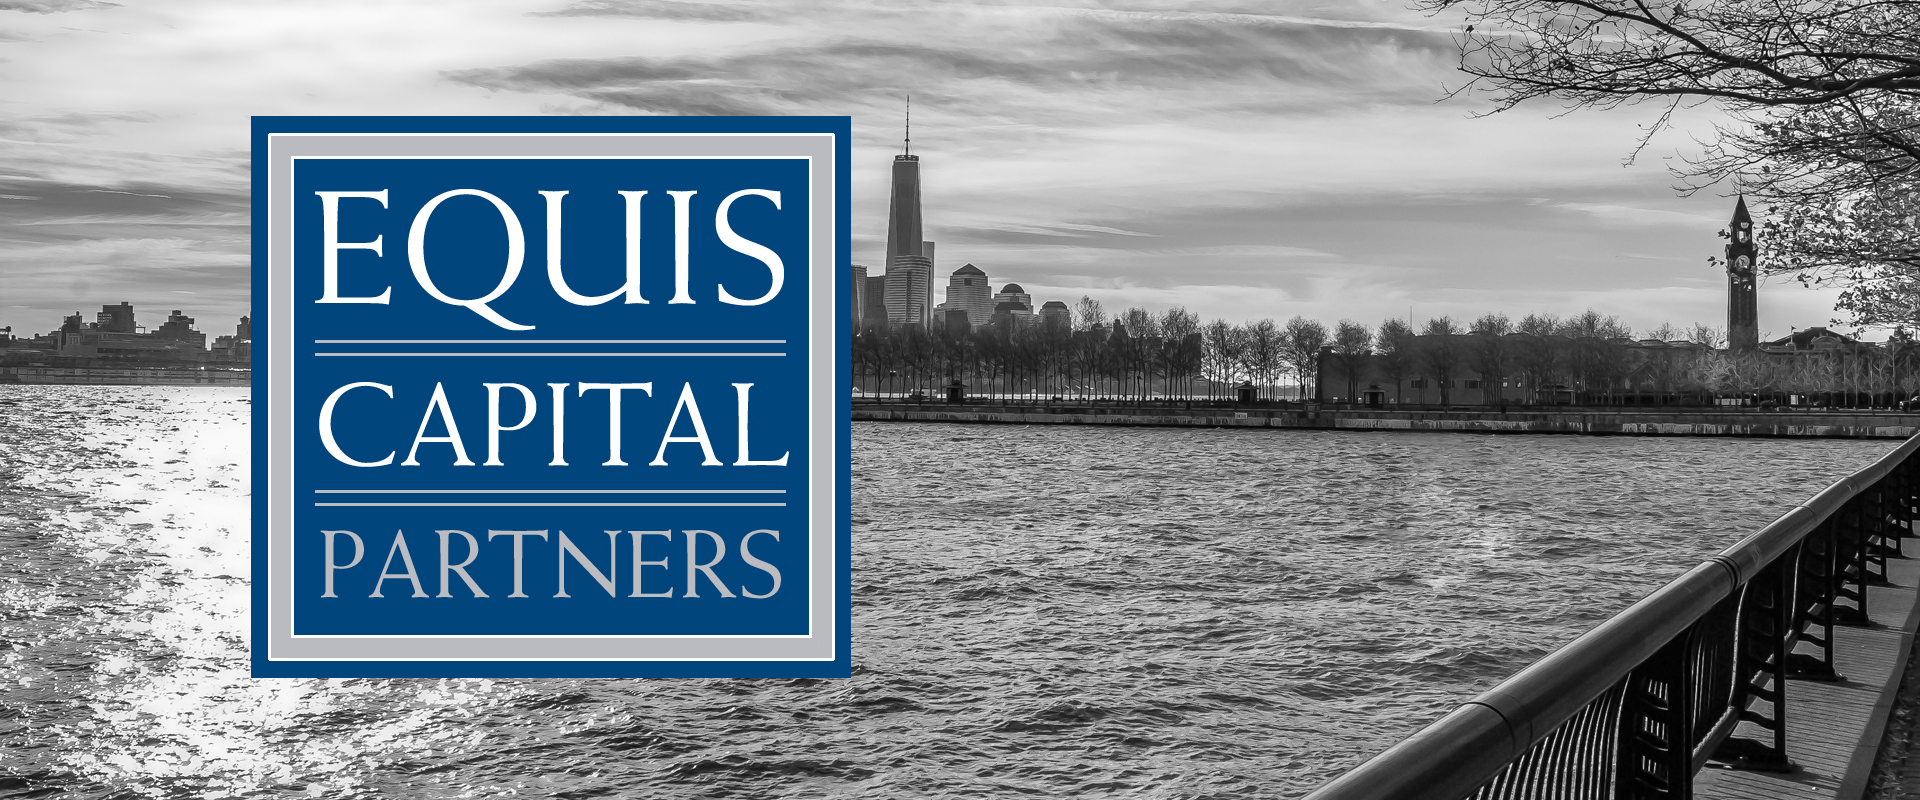 Equis Capital Partners - A Private Equity Firm focused on making